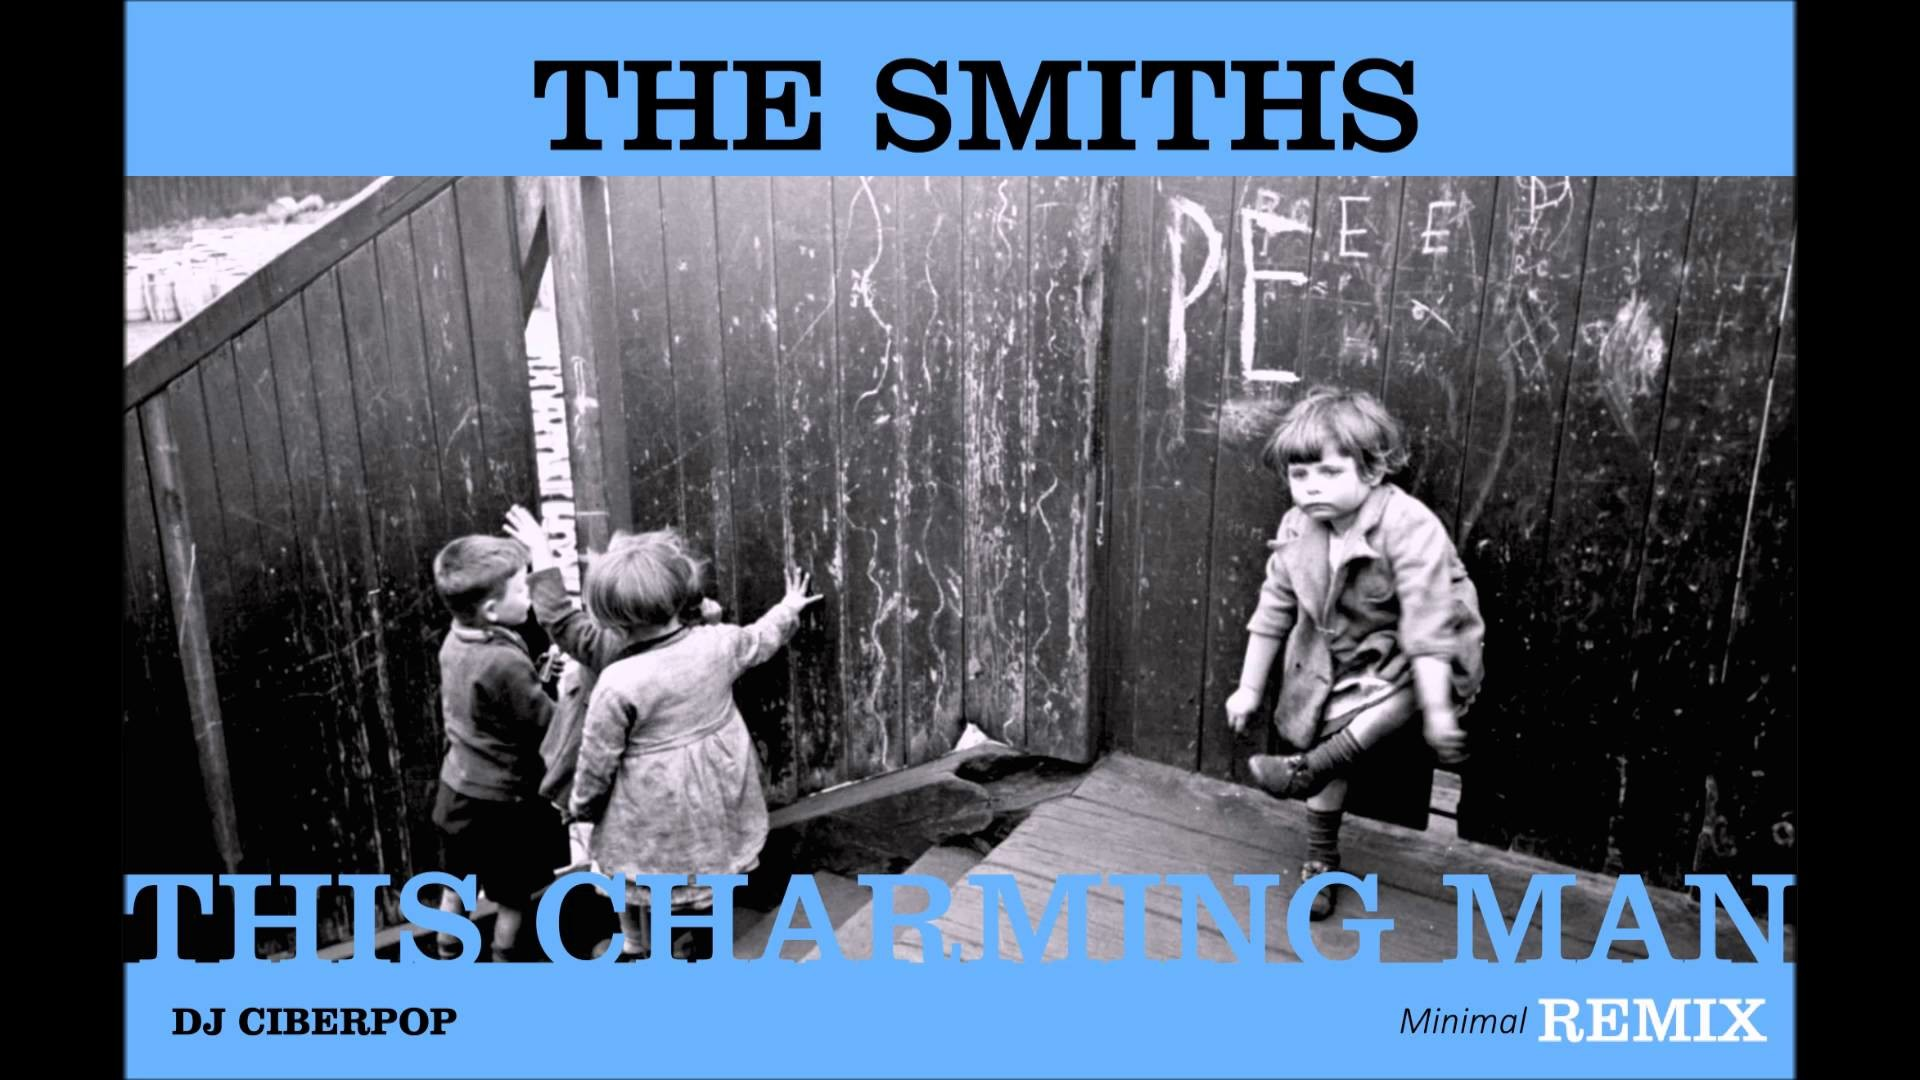 THIS CHARMING MAN (The Smiths) – Minimal REMIX DJ Ciberpop